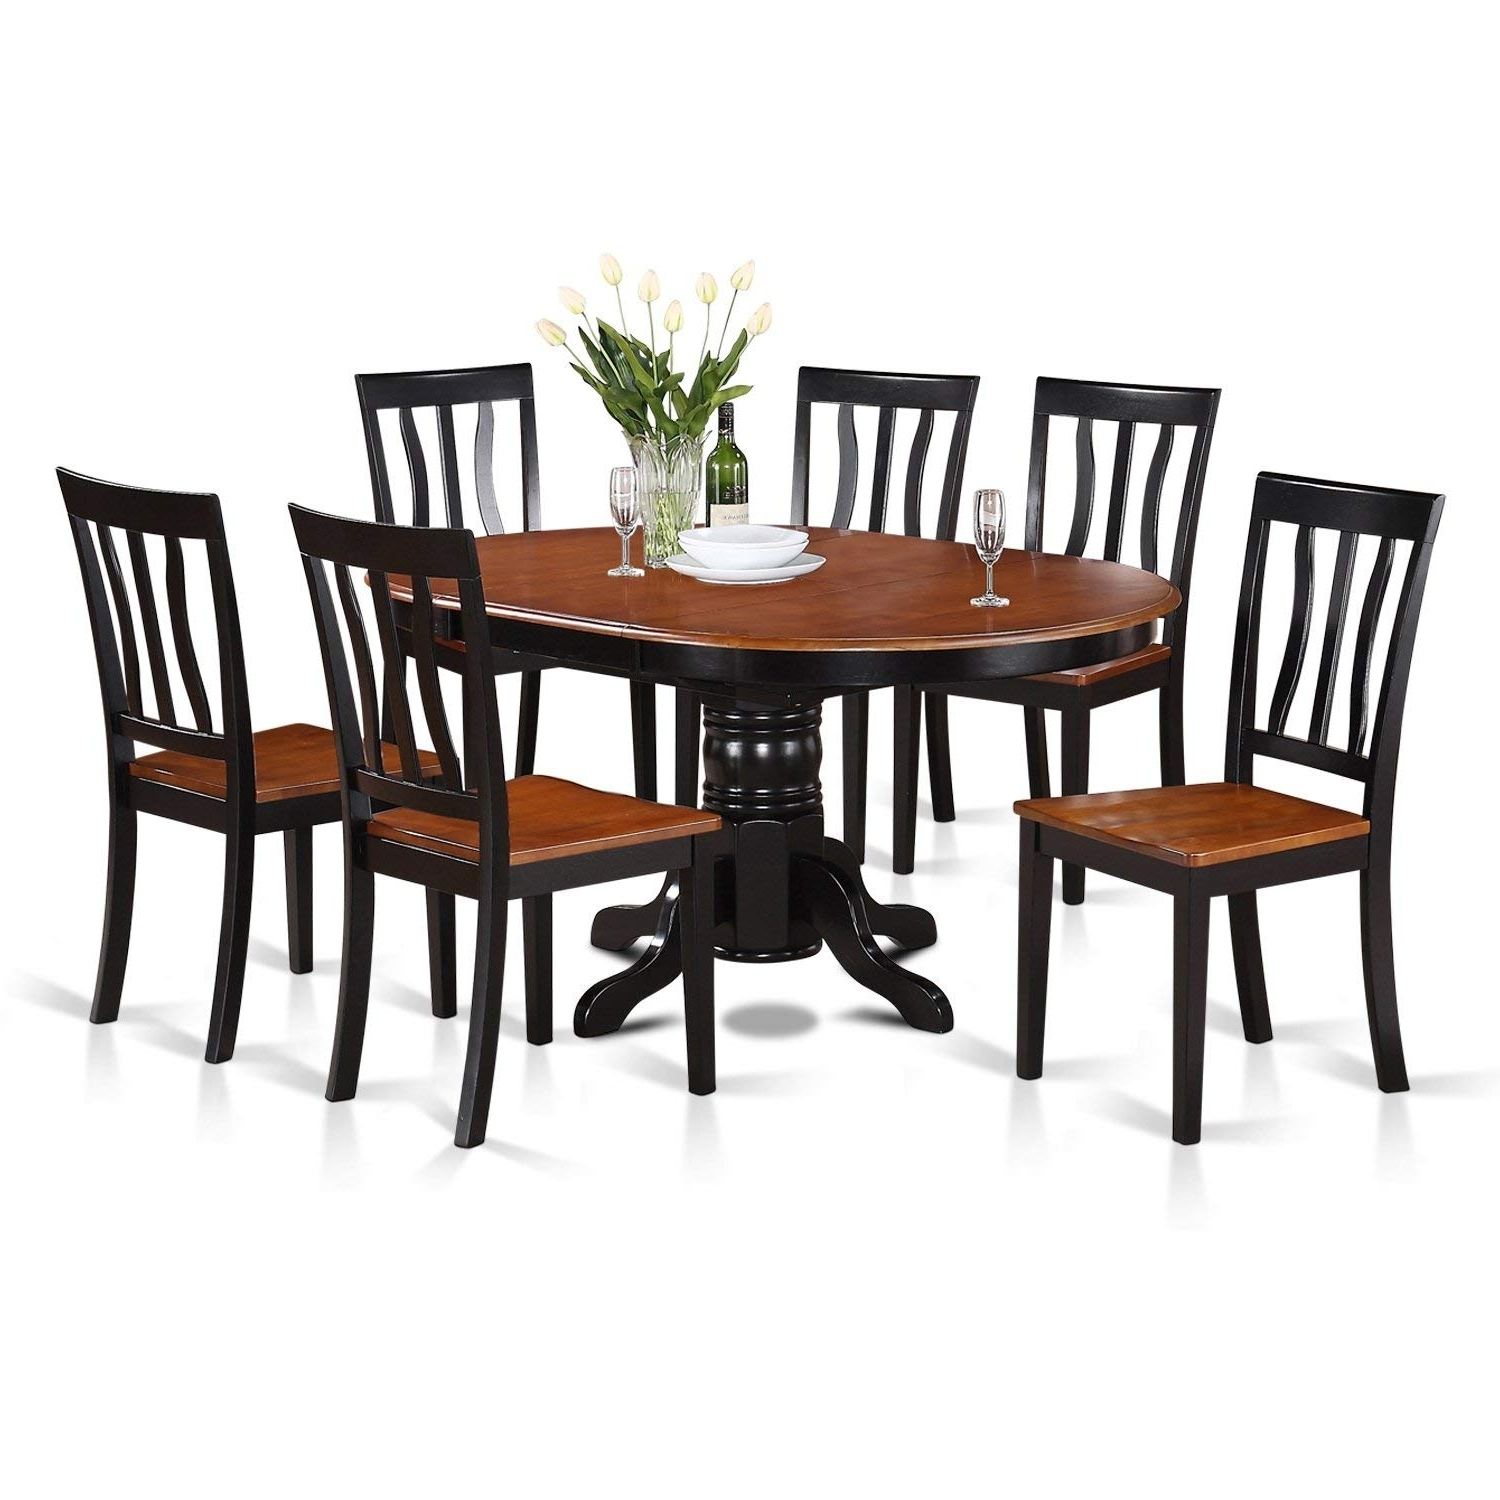 Widely Used Dining Tables For Six Within Amazon: East West Furniture Avat7 Blk W 7 Piece Dining Table Set (View 24 of 25)